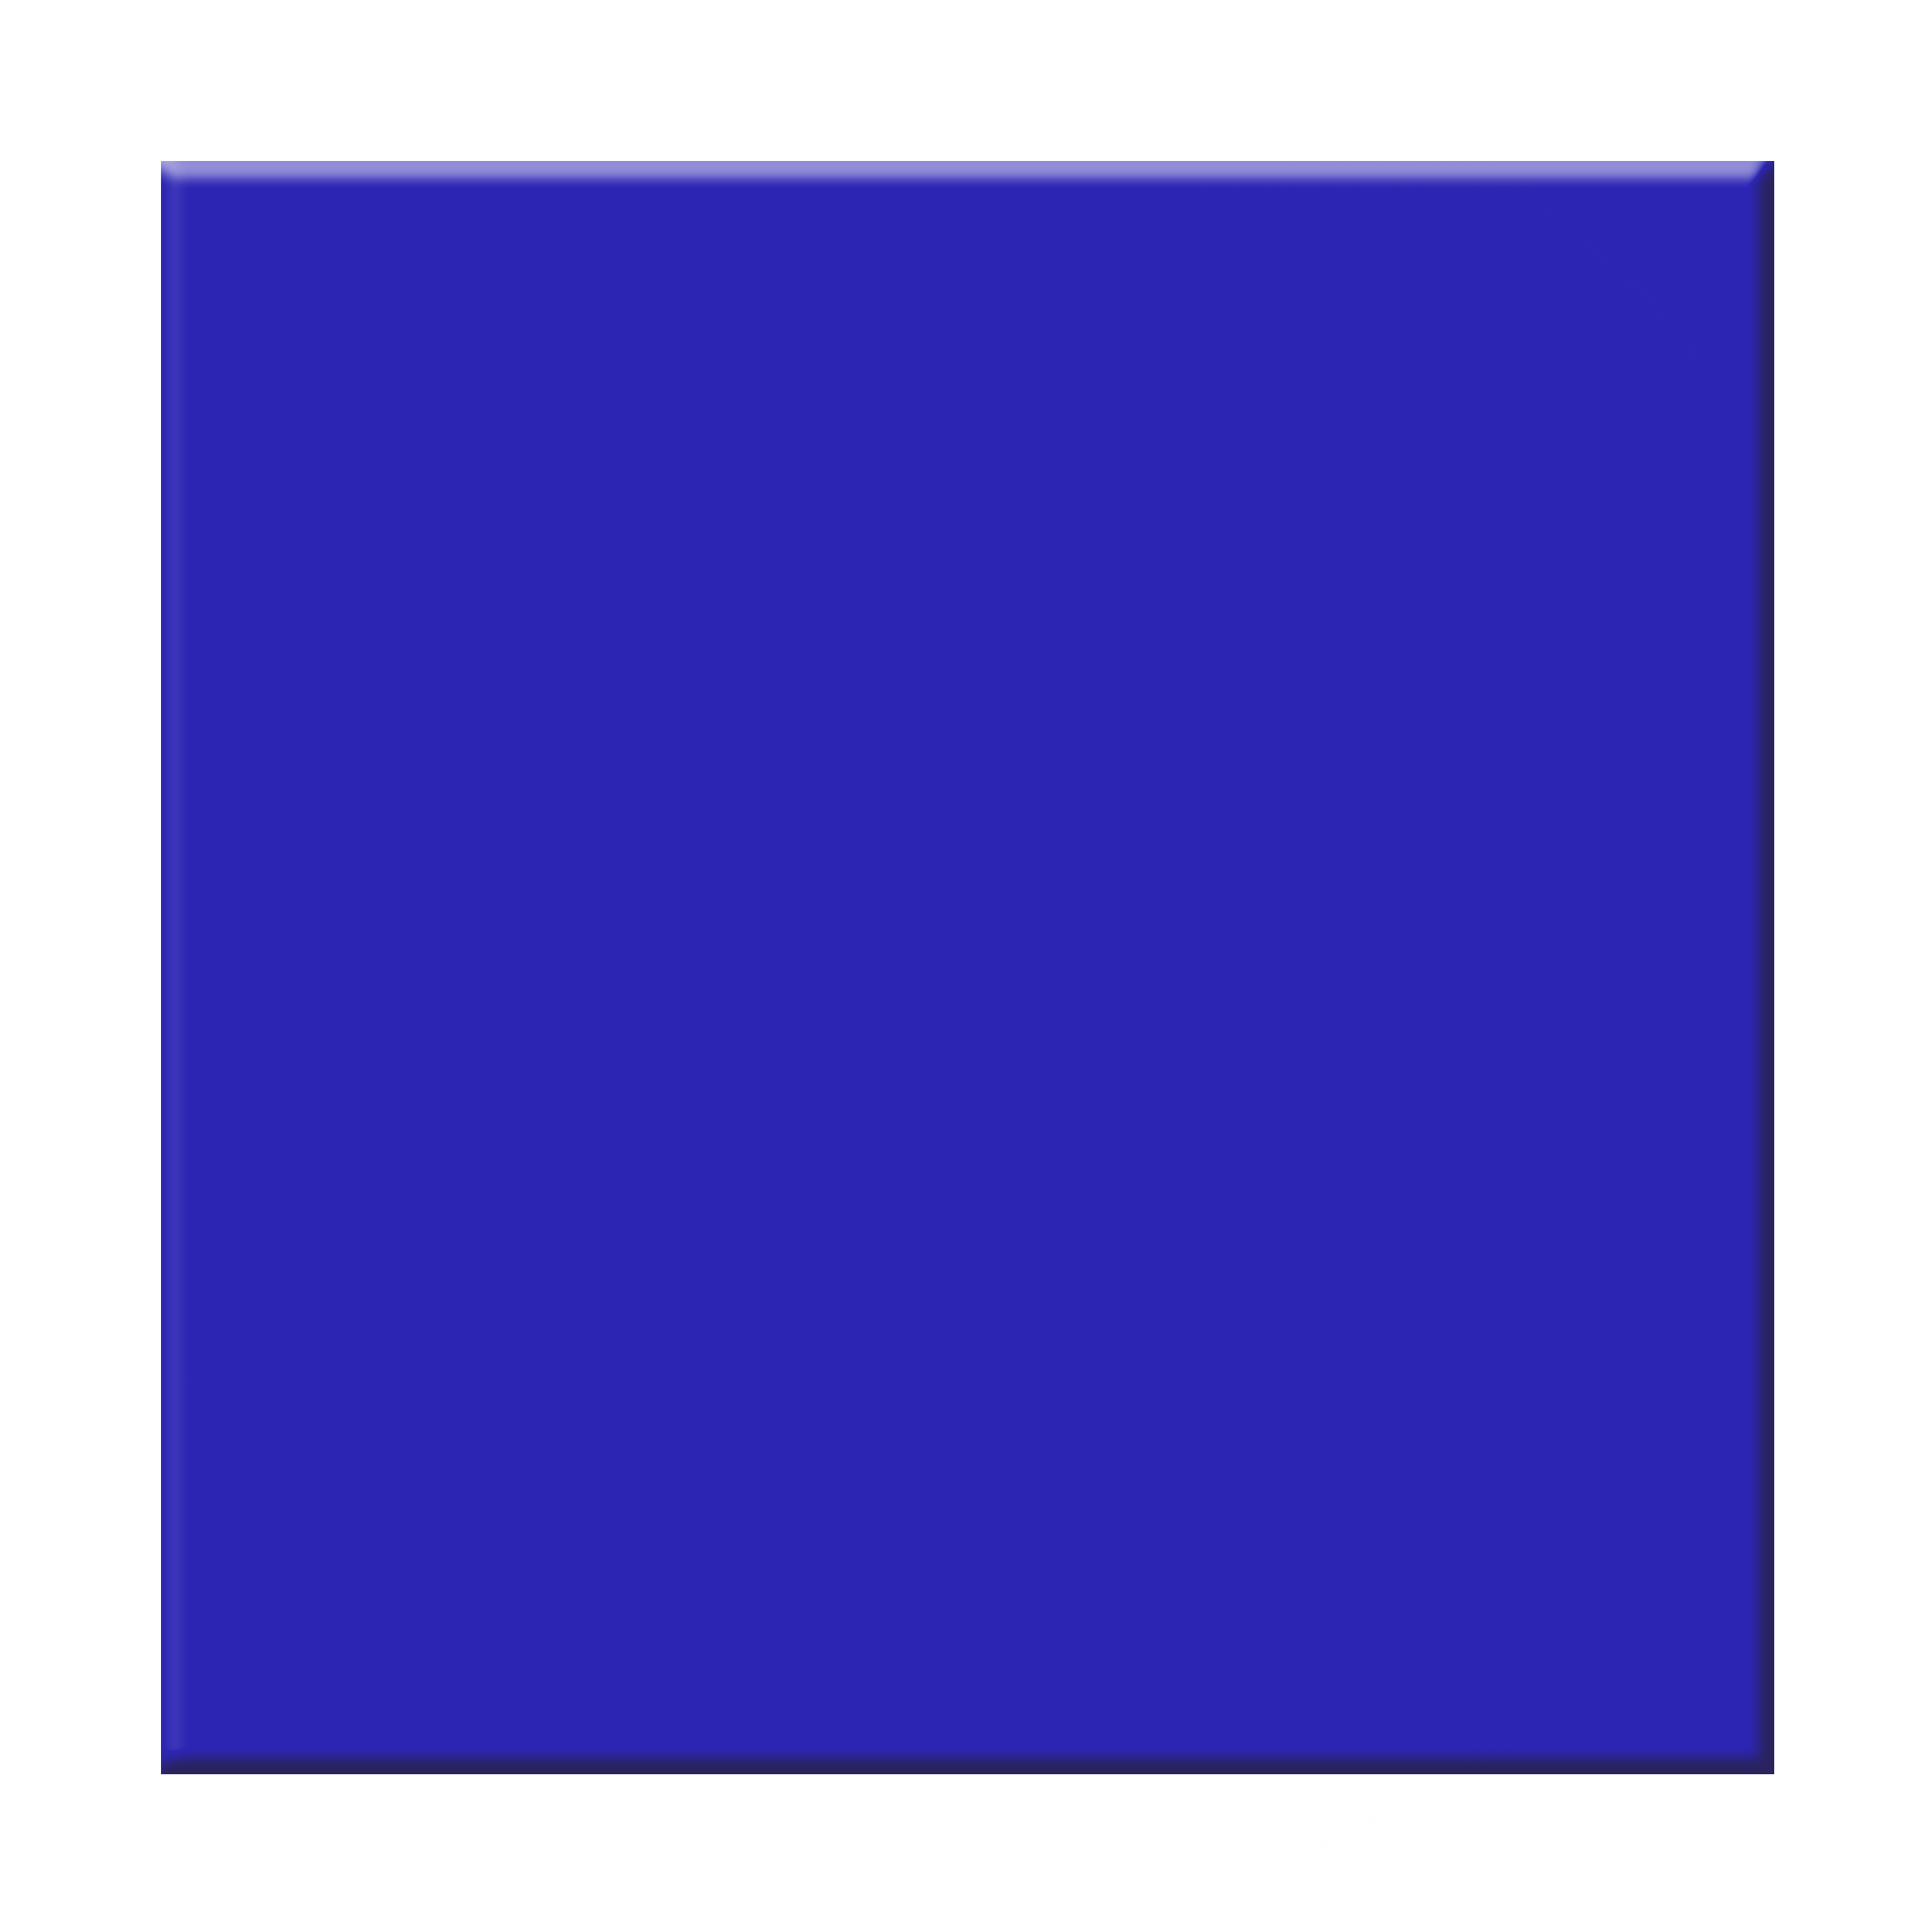 Square clipart Free Art Square Download on